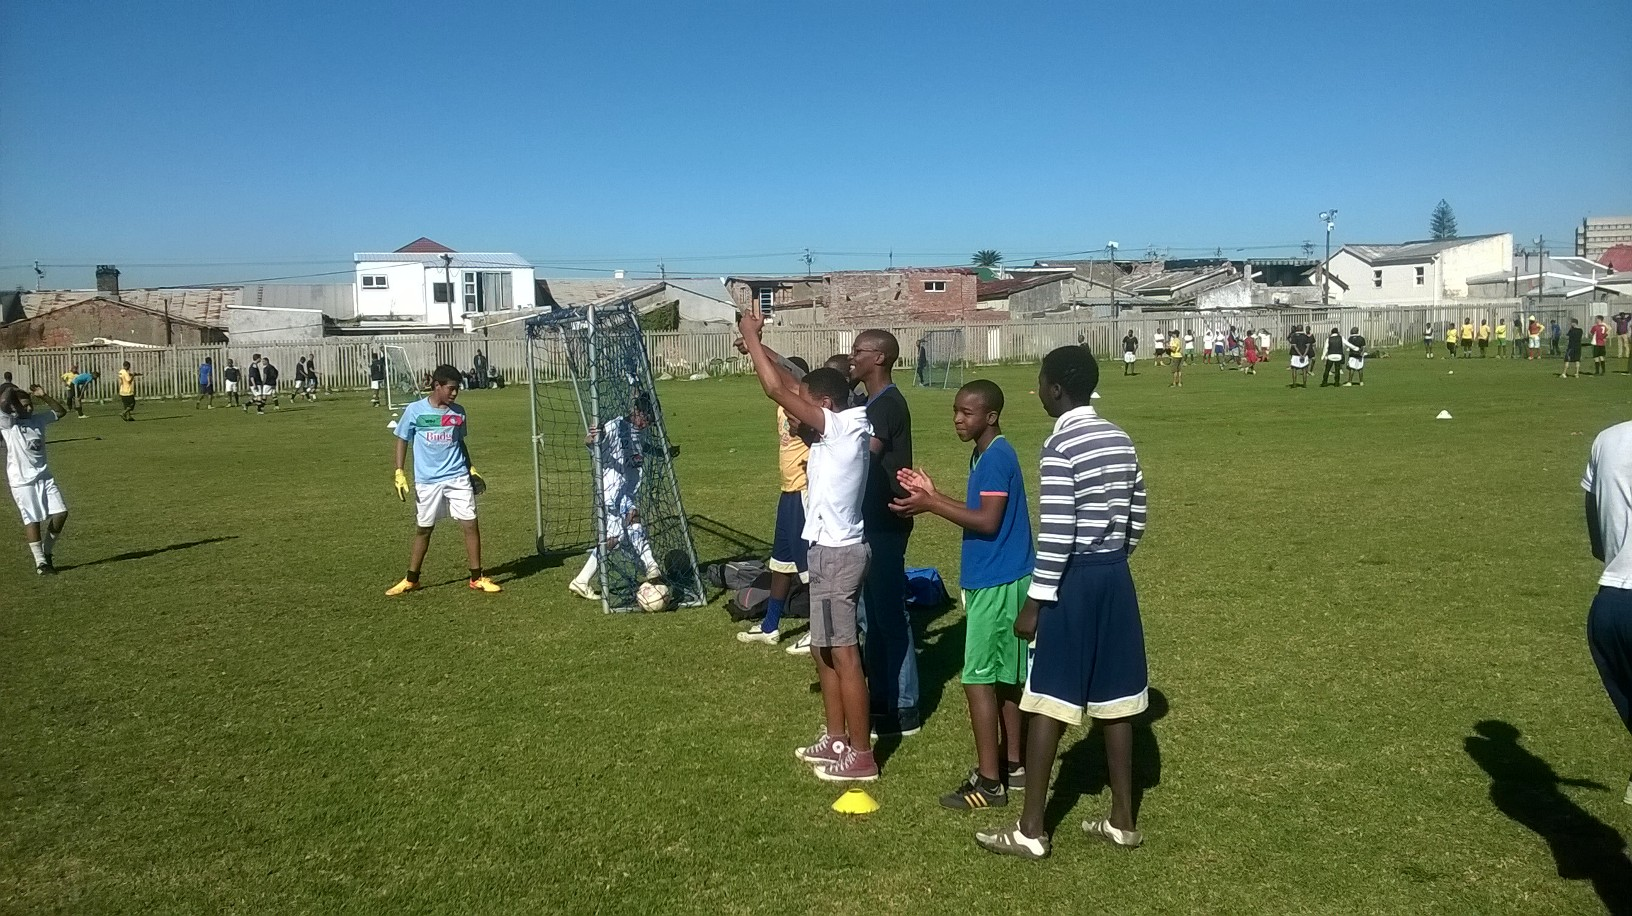 We had teams from all over Cape Town participate in the local tournament.